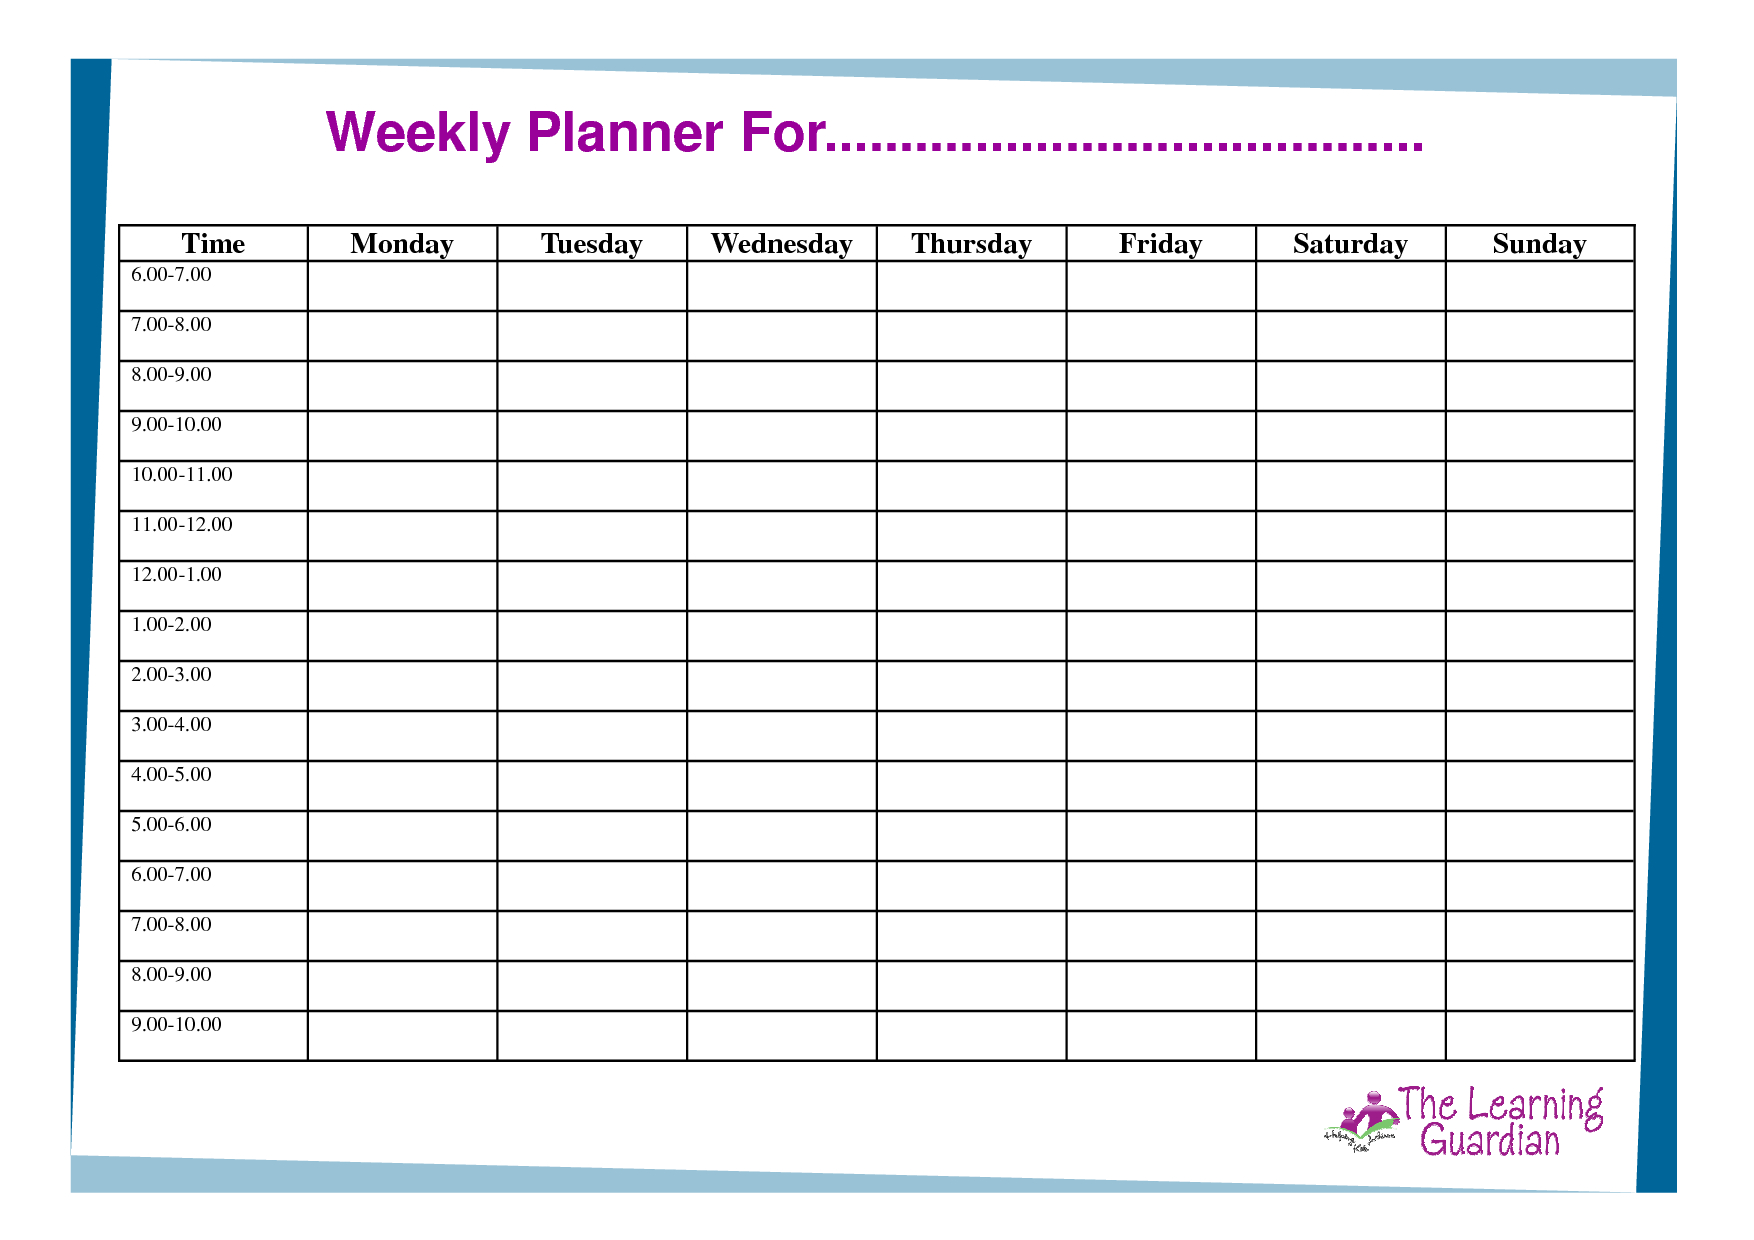 Free Printable Weekly Calendar Templates | Weekly Planner For Time with regard to Printable Work Week Calendar Template